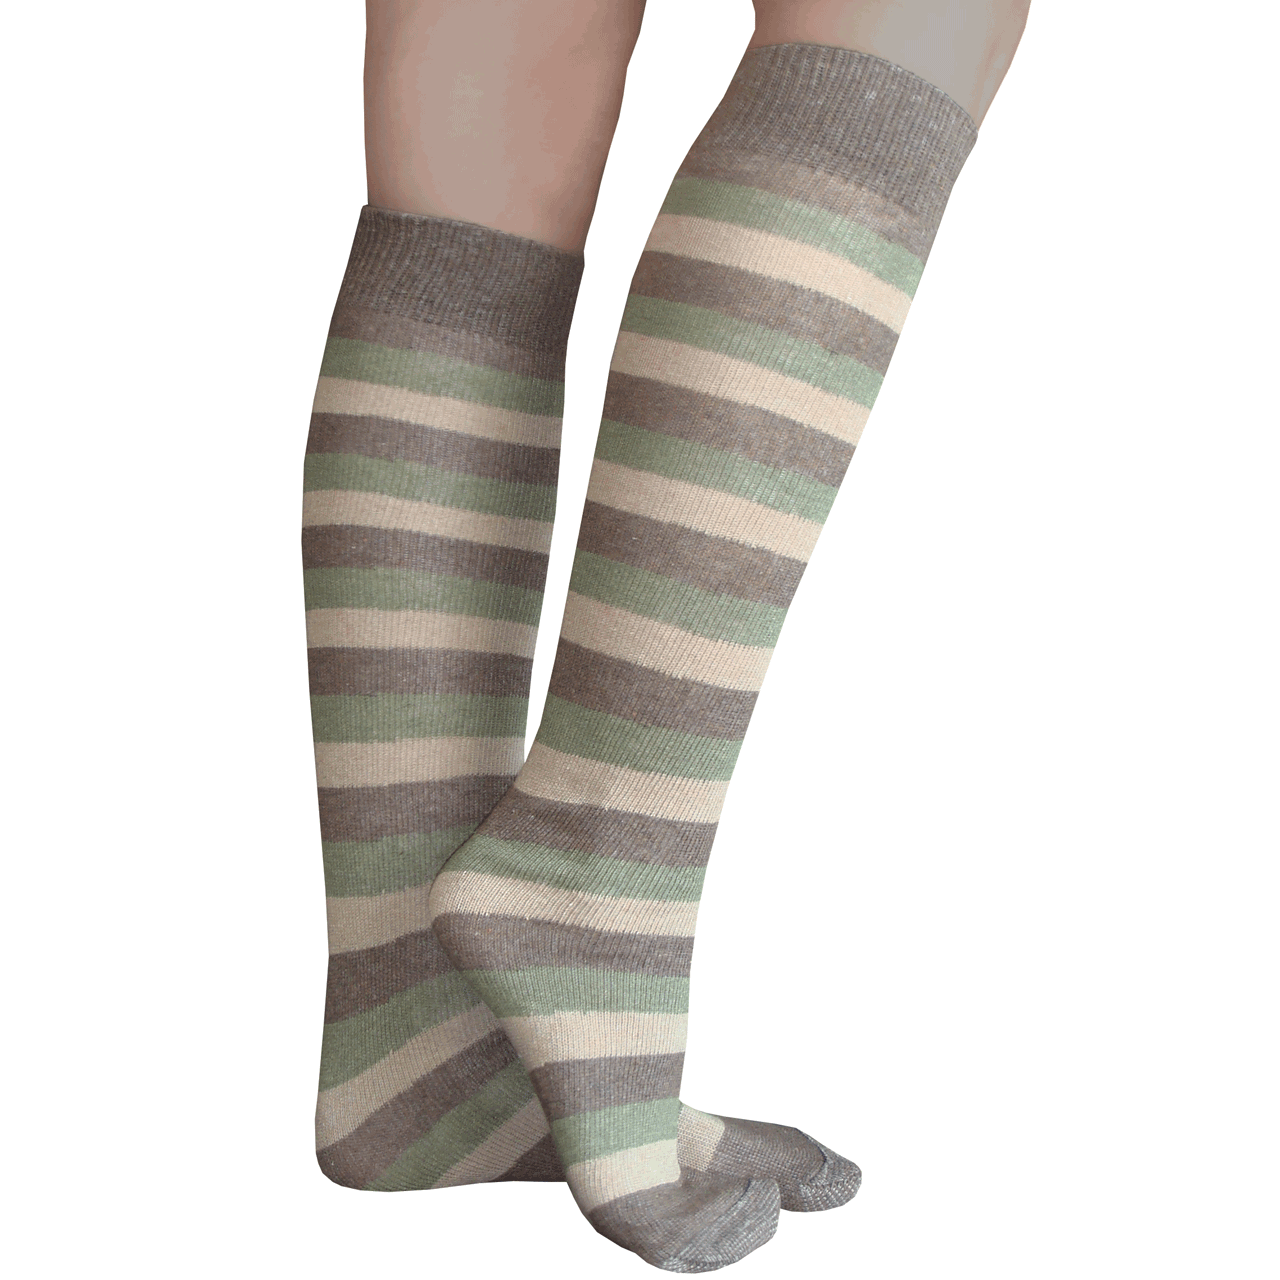 409dbaf6cd1 Earth Tone Striped Knee Socks